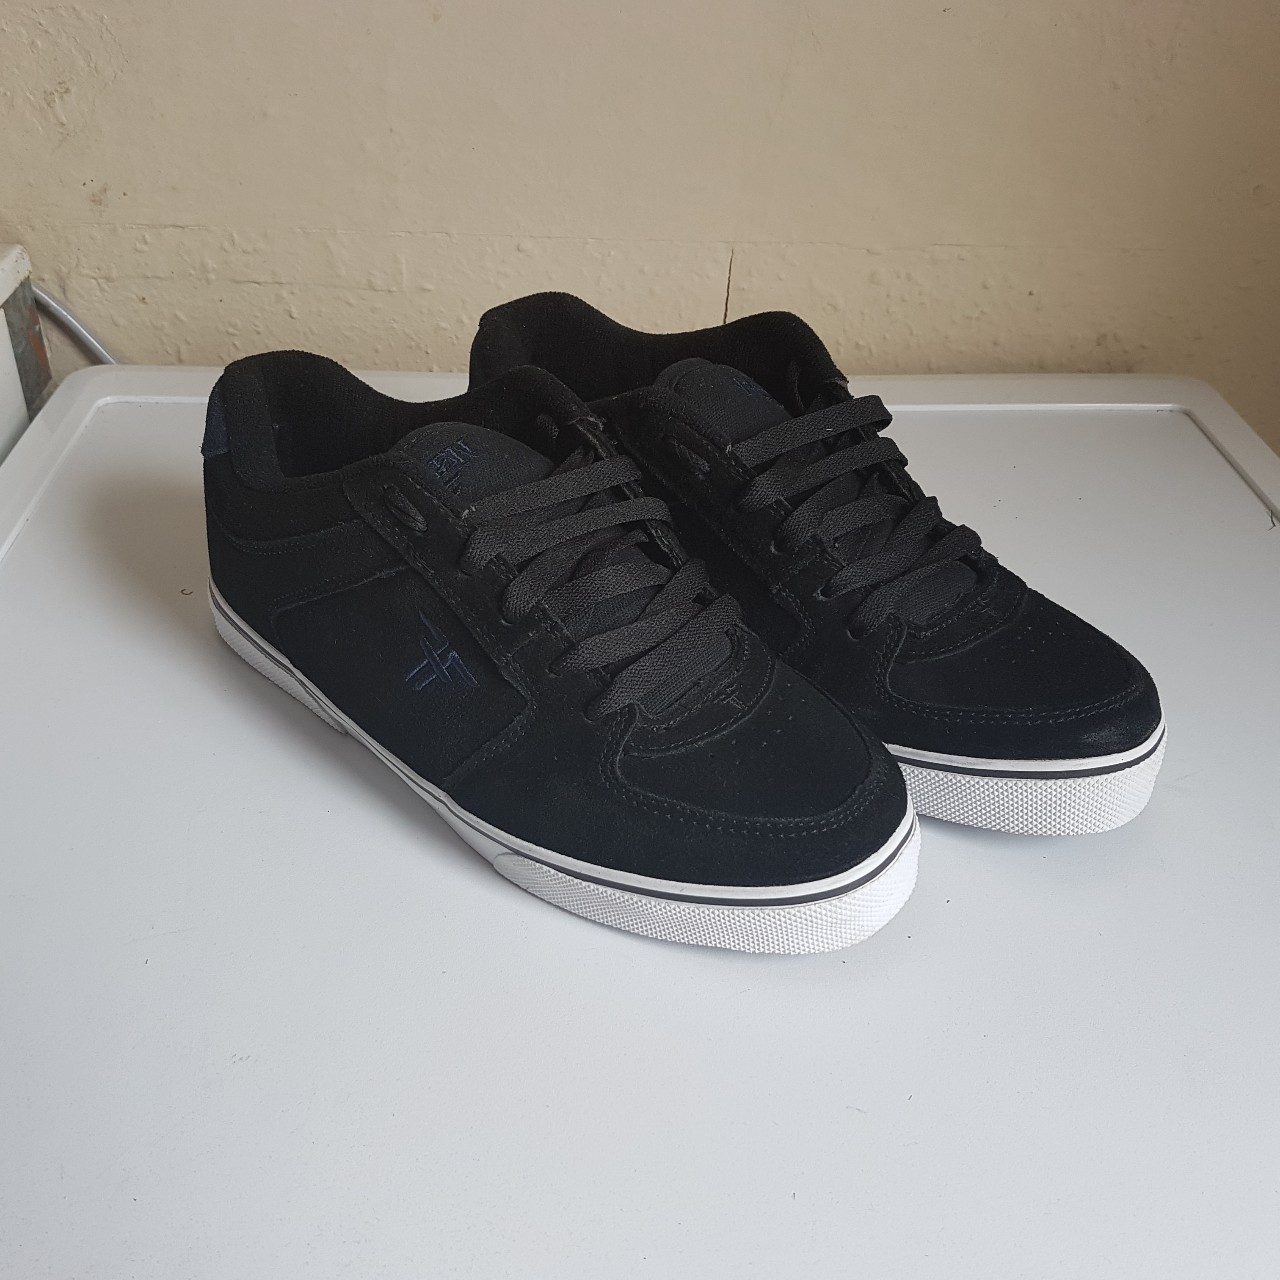 Fallen Jamie Thomas signature 'Chief' Skate Shoes. Depop